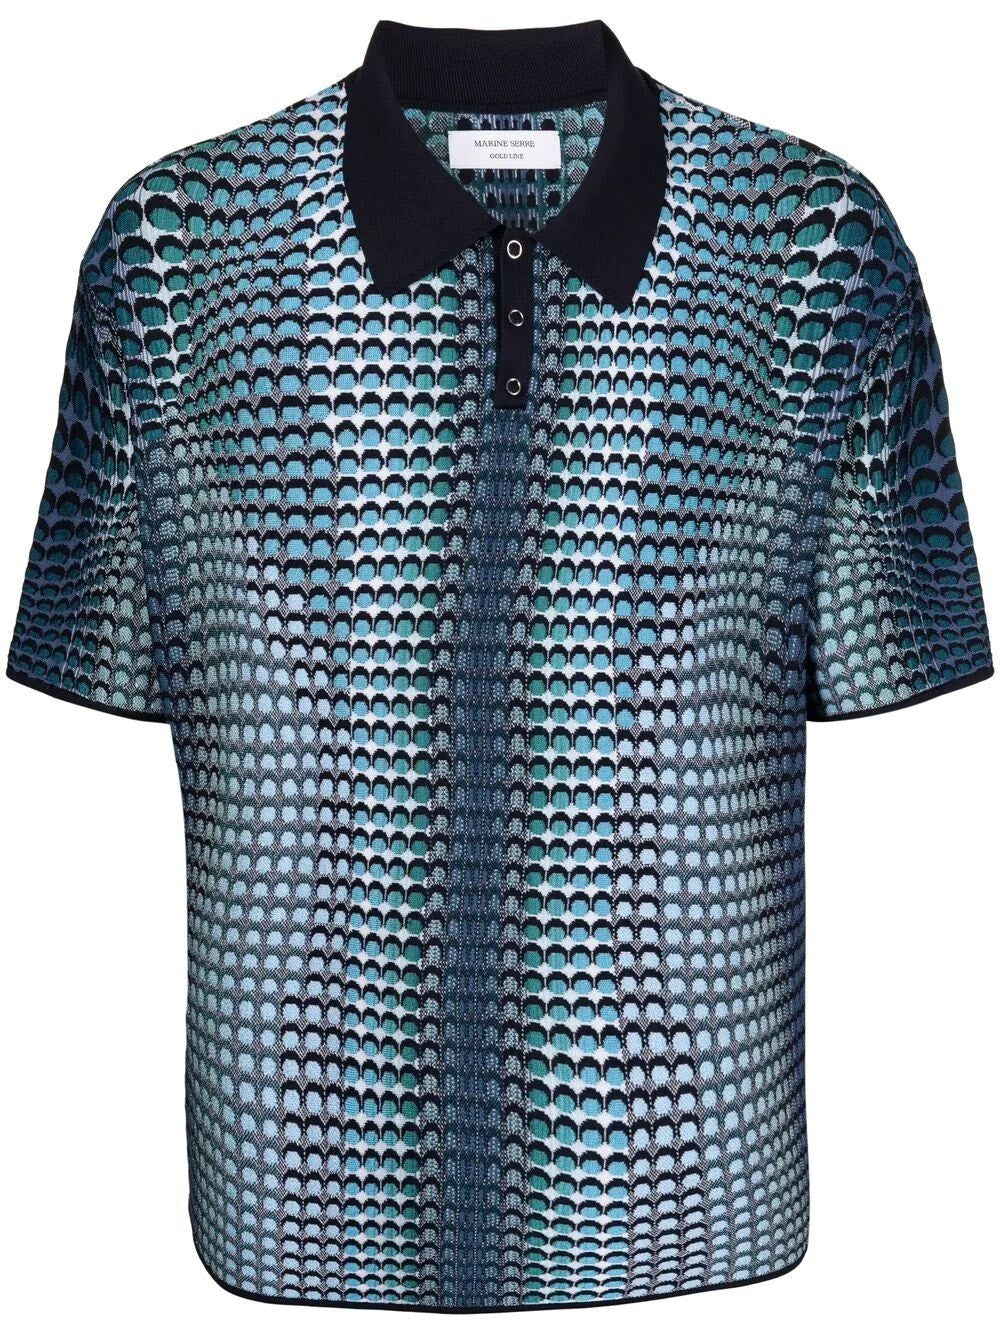 Sea Blue Moonfish Skin Jacquard Knit Polo Shirt